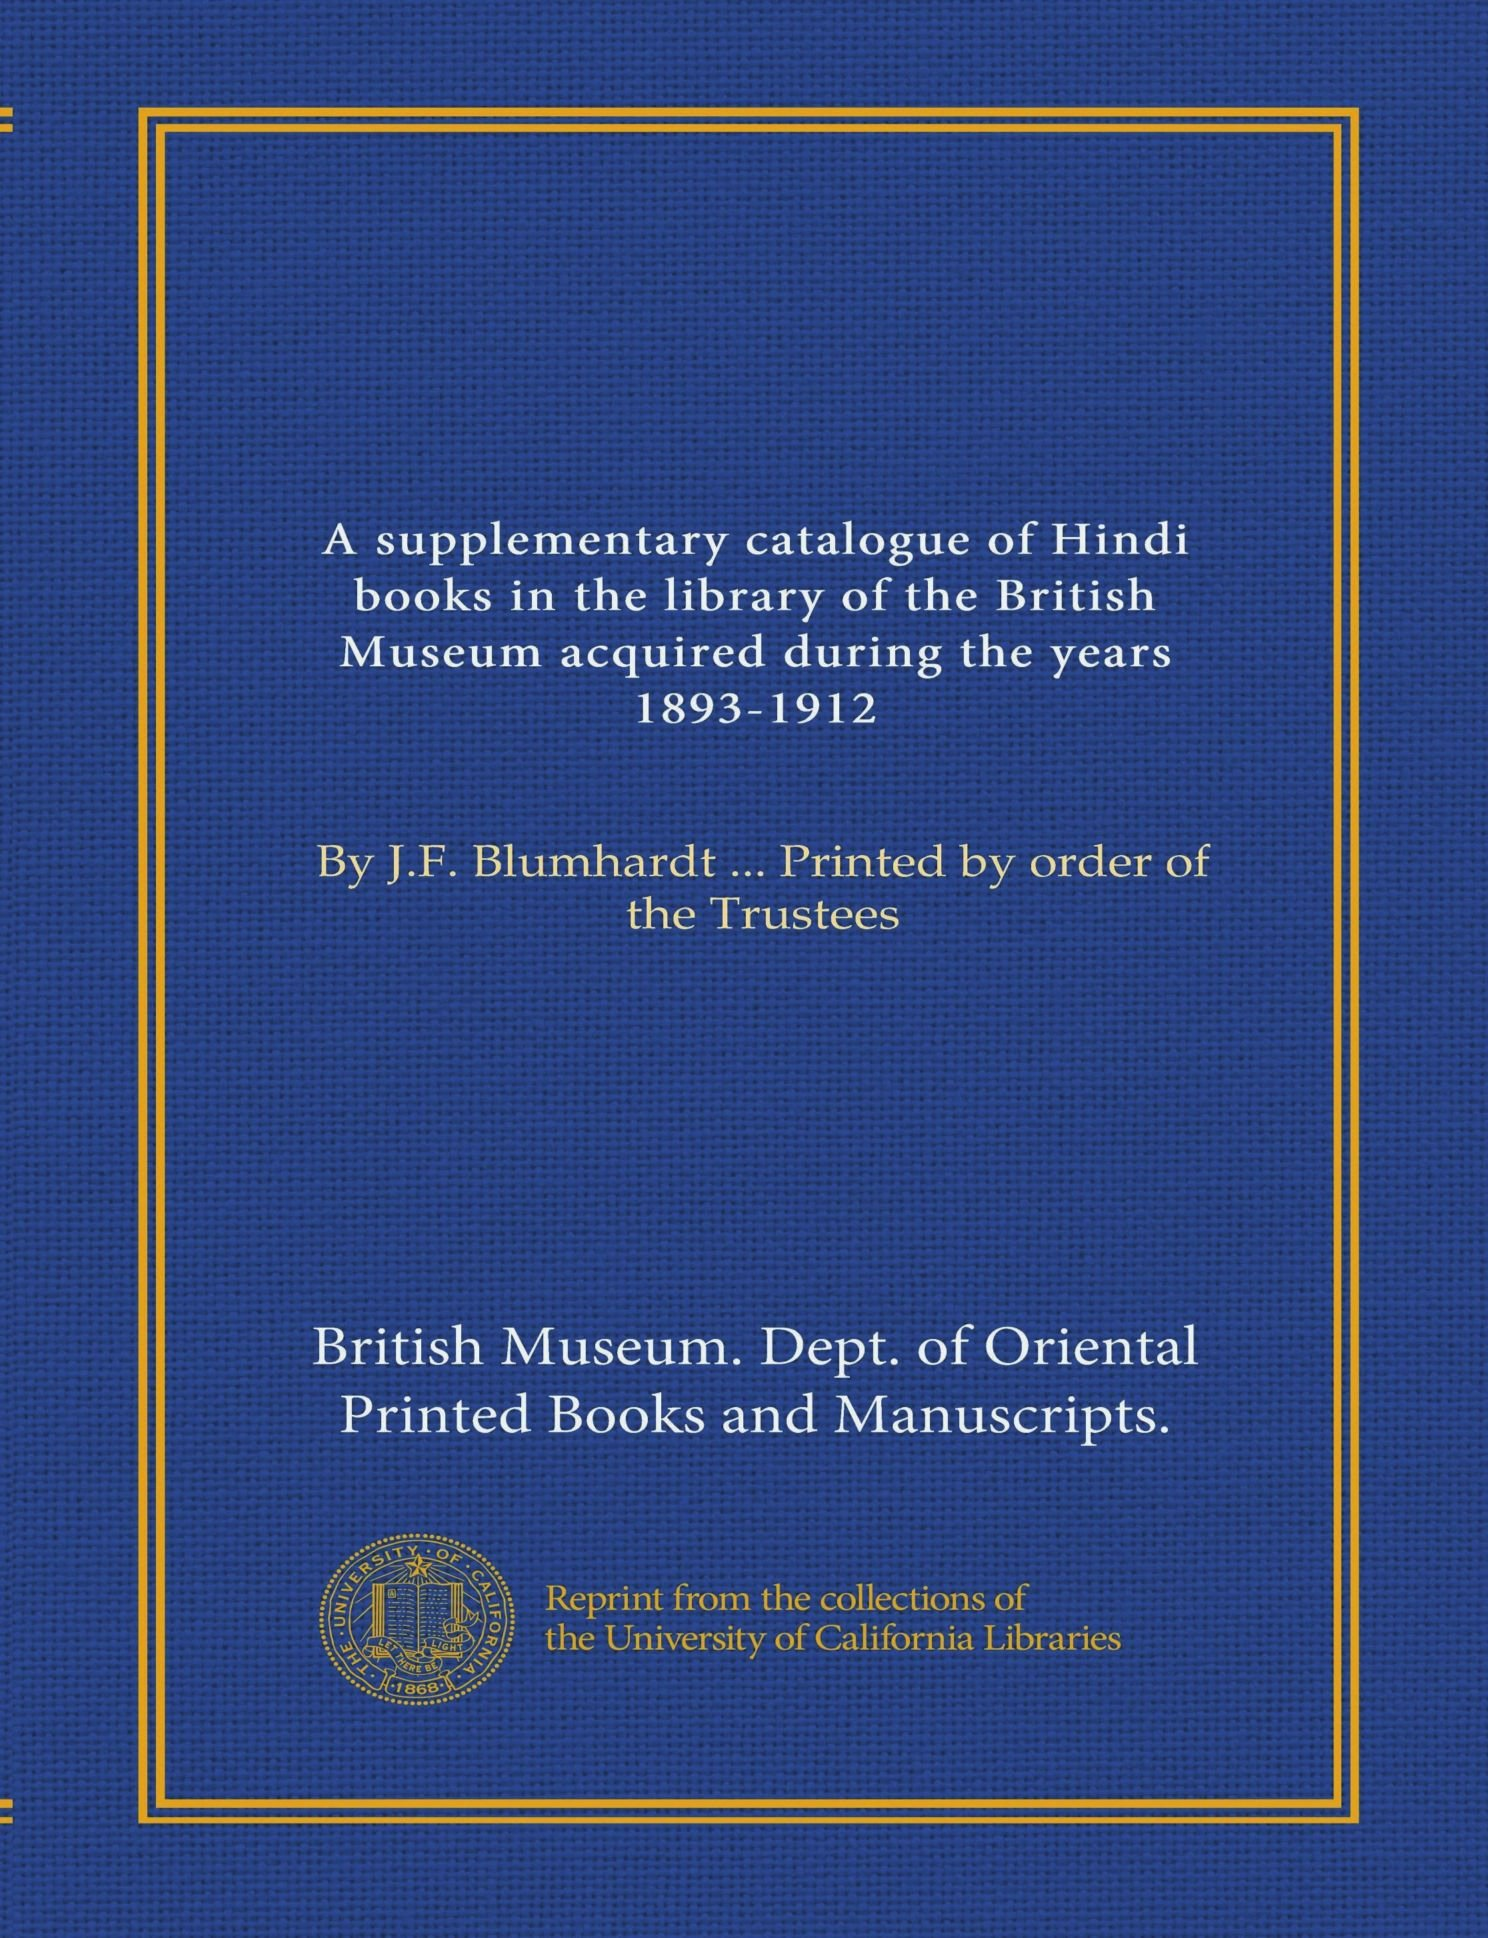 A supplementary catalogue of Hindi books in the library of the British Museum acquired during the years 1893-1912: By J.F. Blumhardt ... Printed by order of the Trustees pdf epub